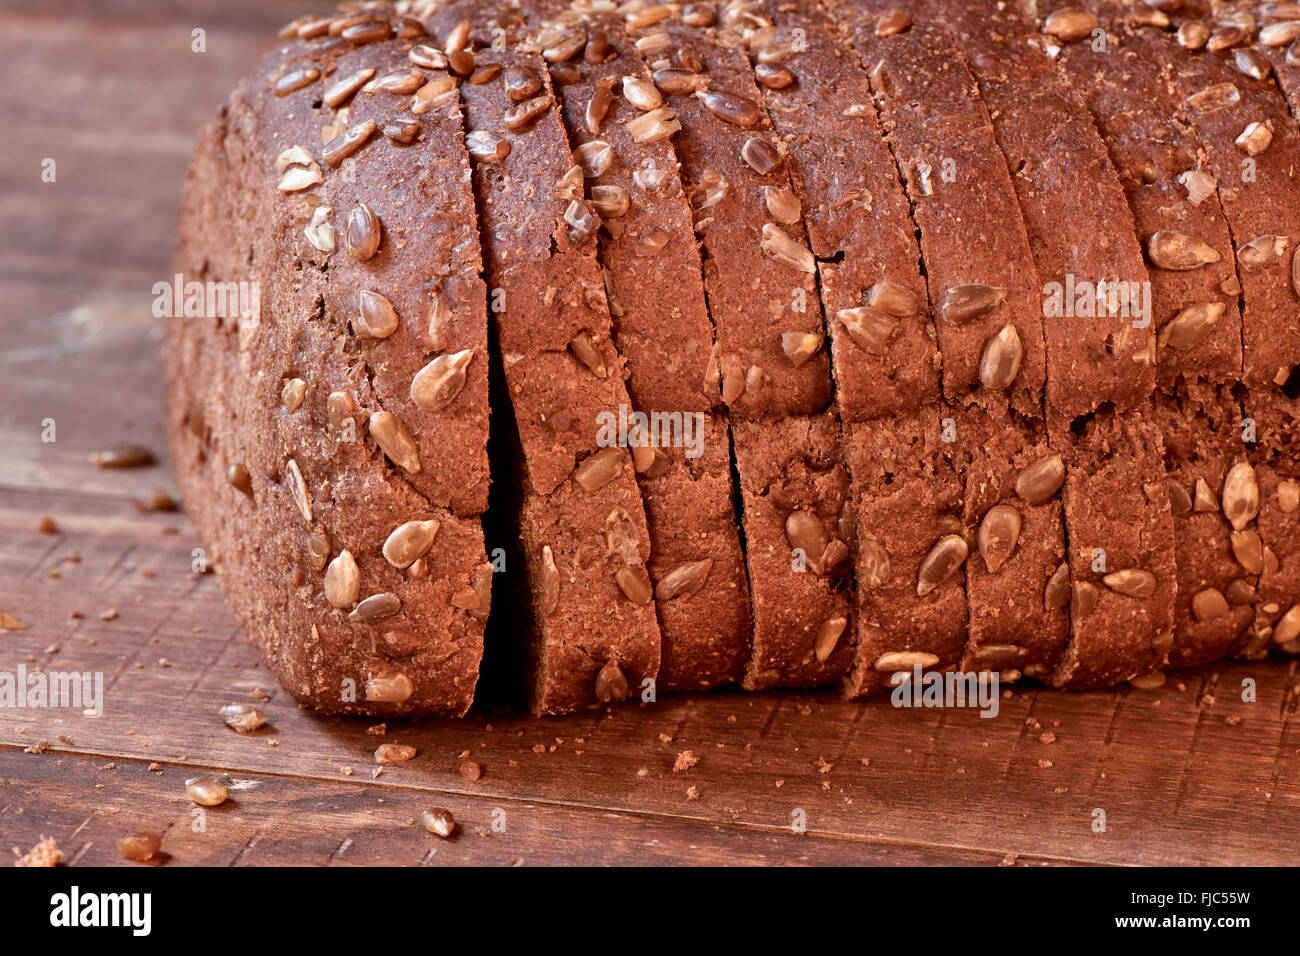 closeup of a sliced loaf of rye bread topped with sunflower seeds on a rustic wooden surface - Stock Image